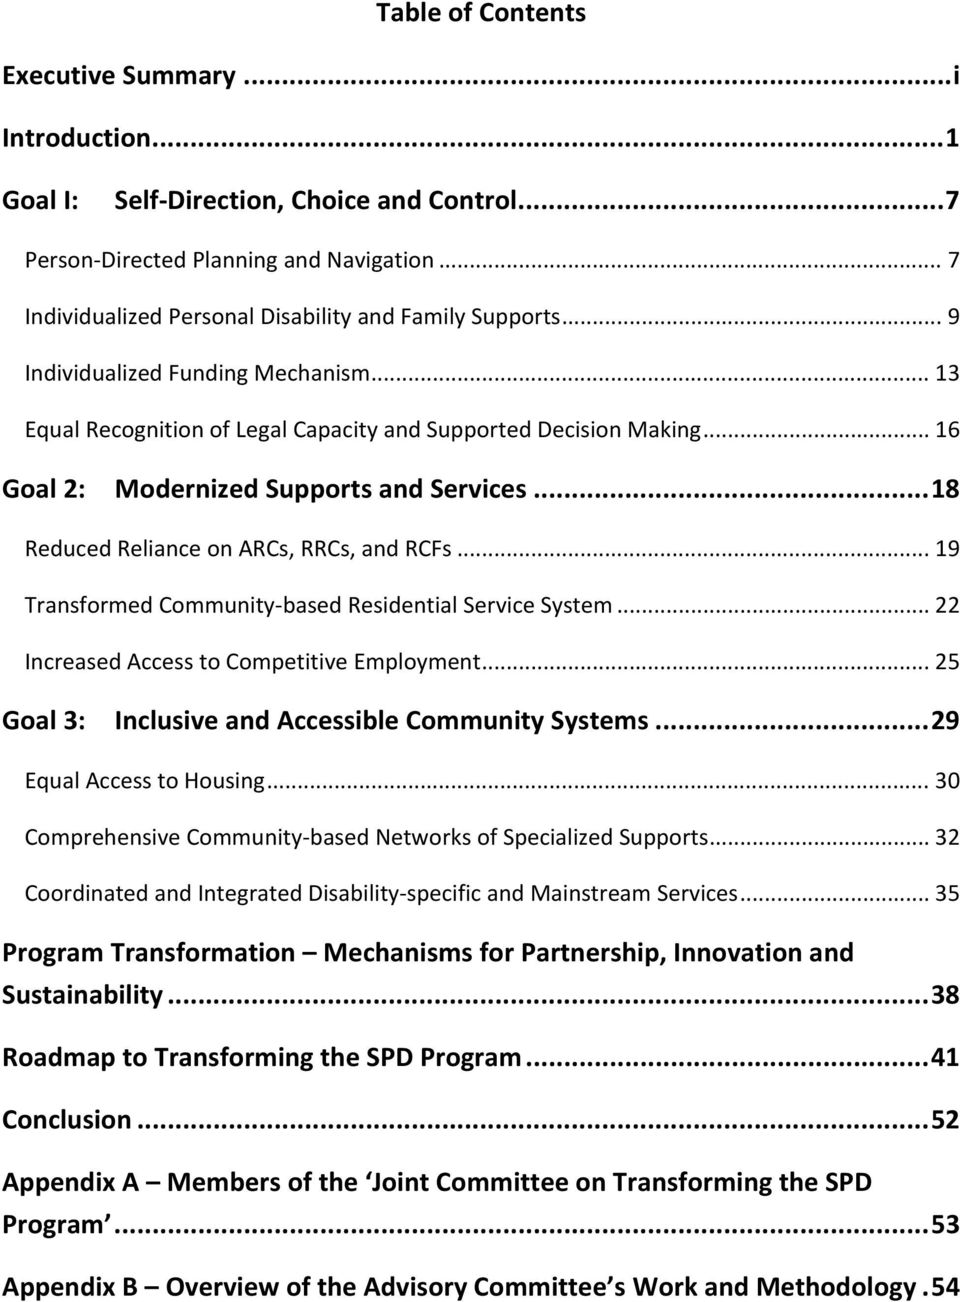 .. 16 Goal 2: Modernized Supports and Services...18 Reduced Reliance on ARCs, RRCs, and RCFs... 19 Transformed Community based Residential Service System.